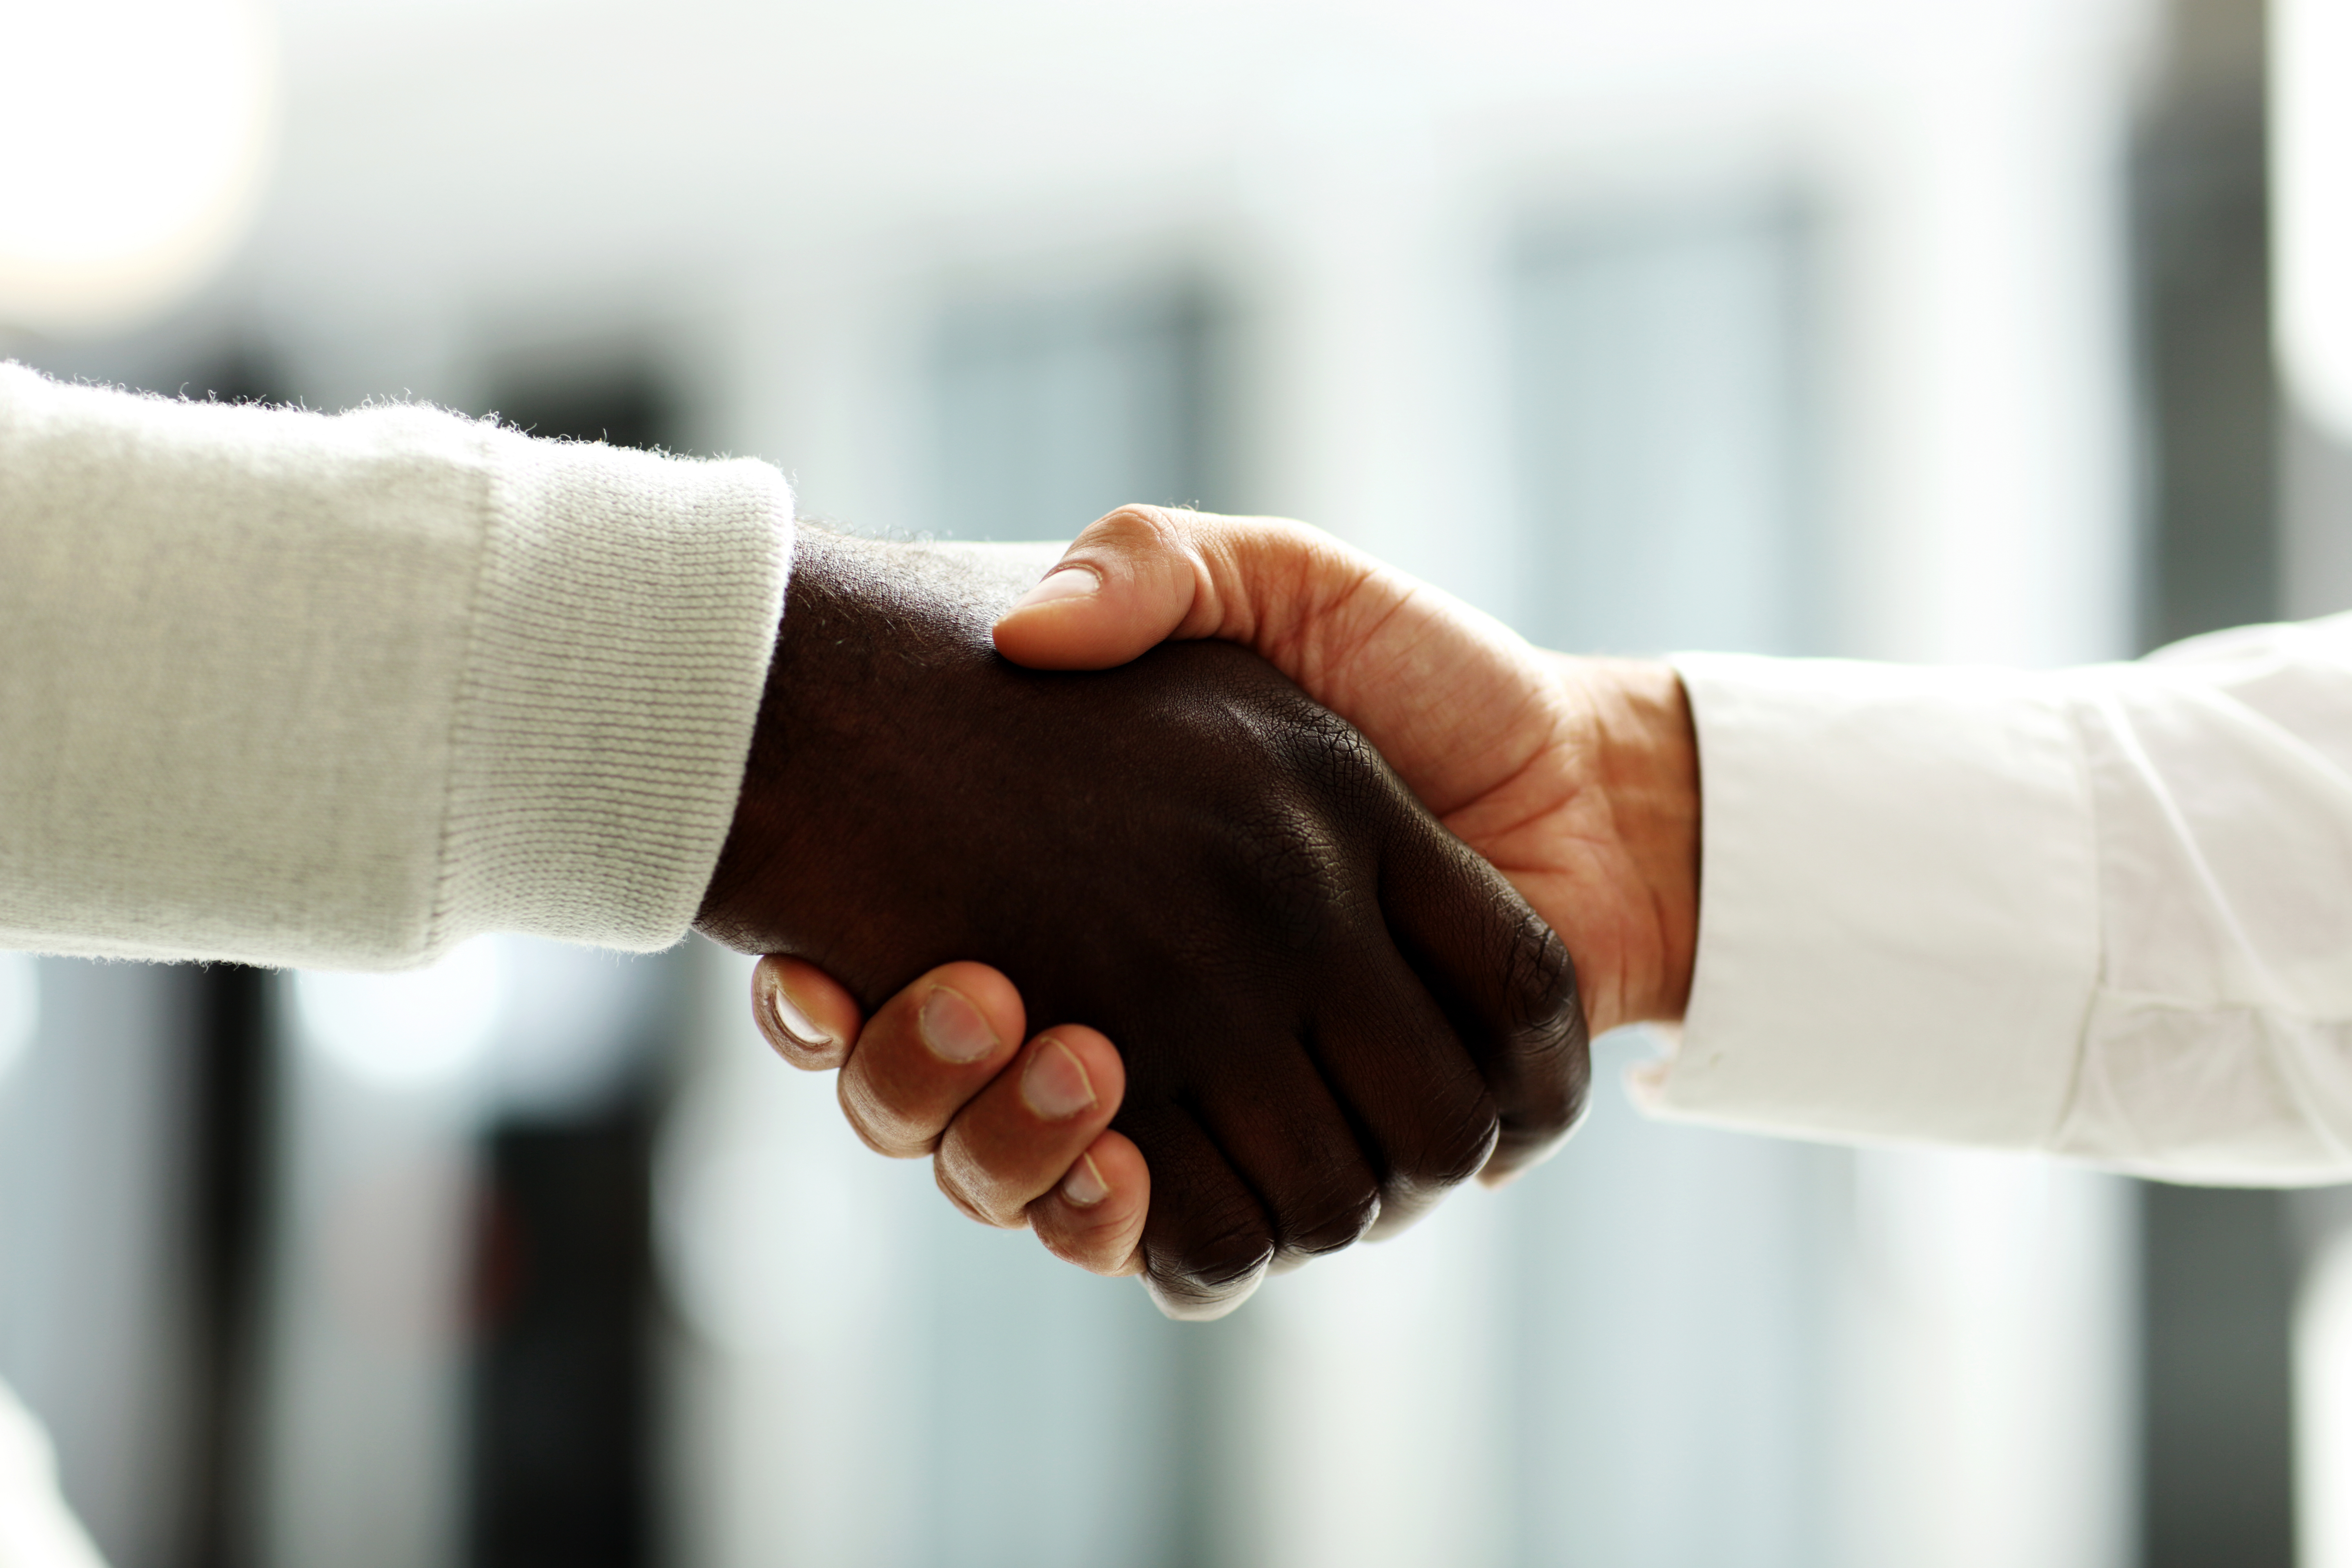 businessmen shaking hands, Caucasian and African-American